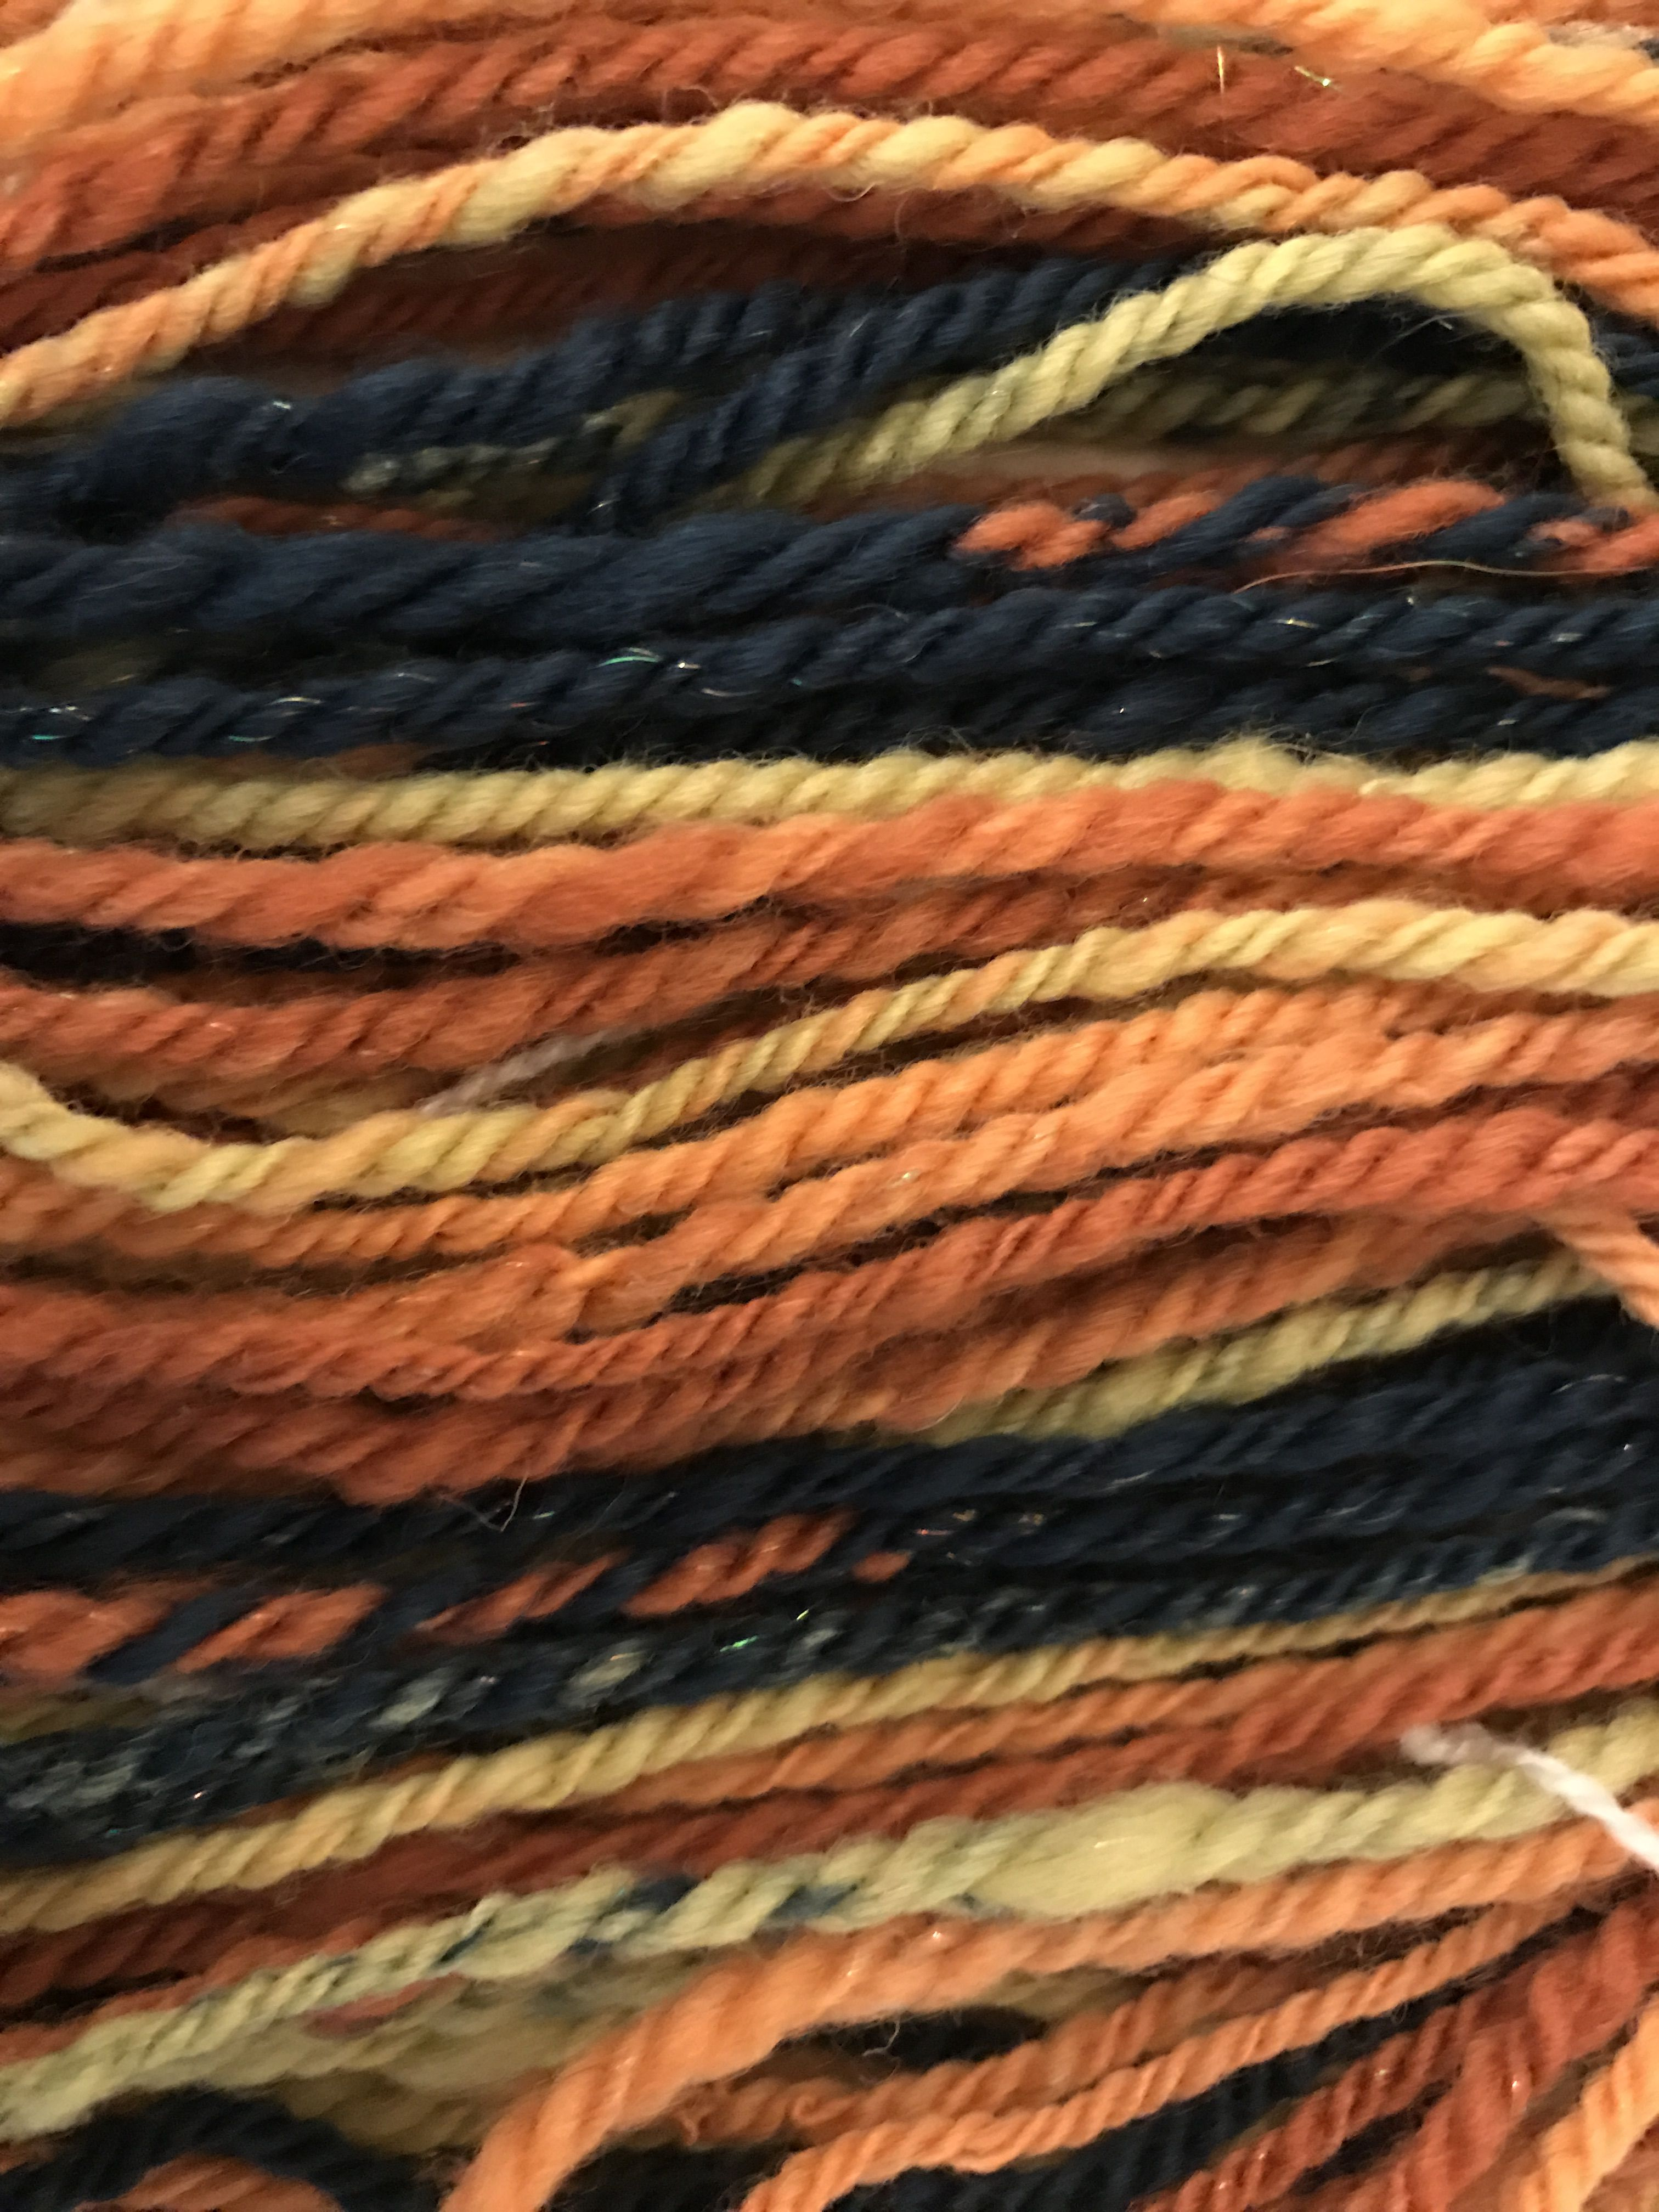 drumcarded striped batt, spun creating long colour repeats,navajo ply